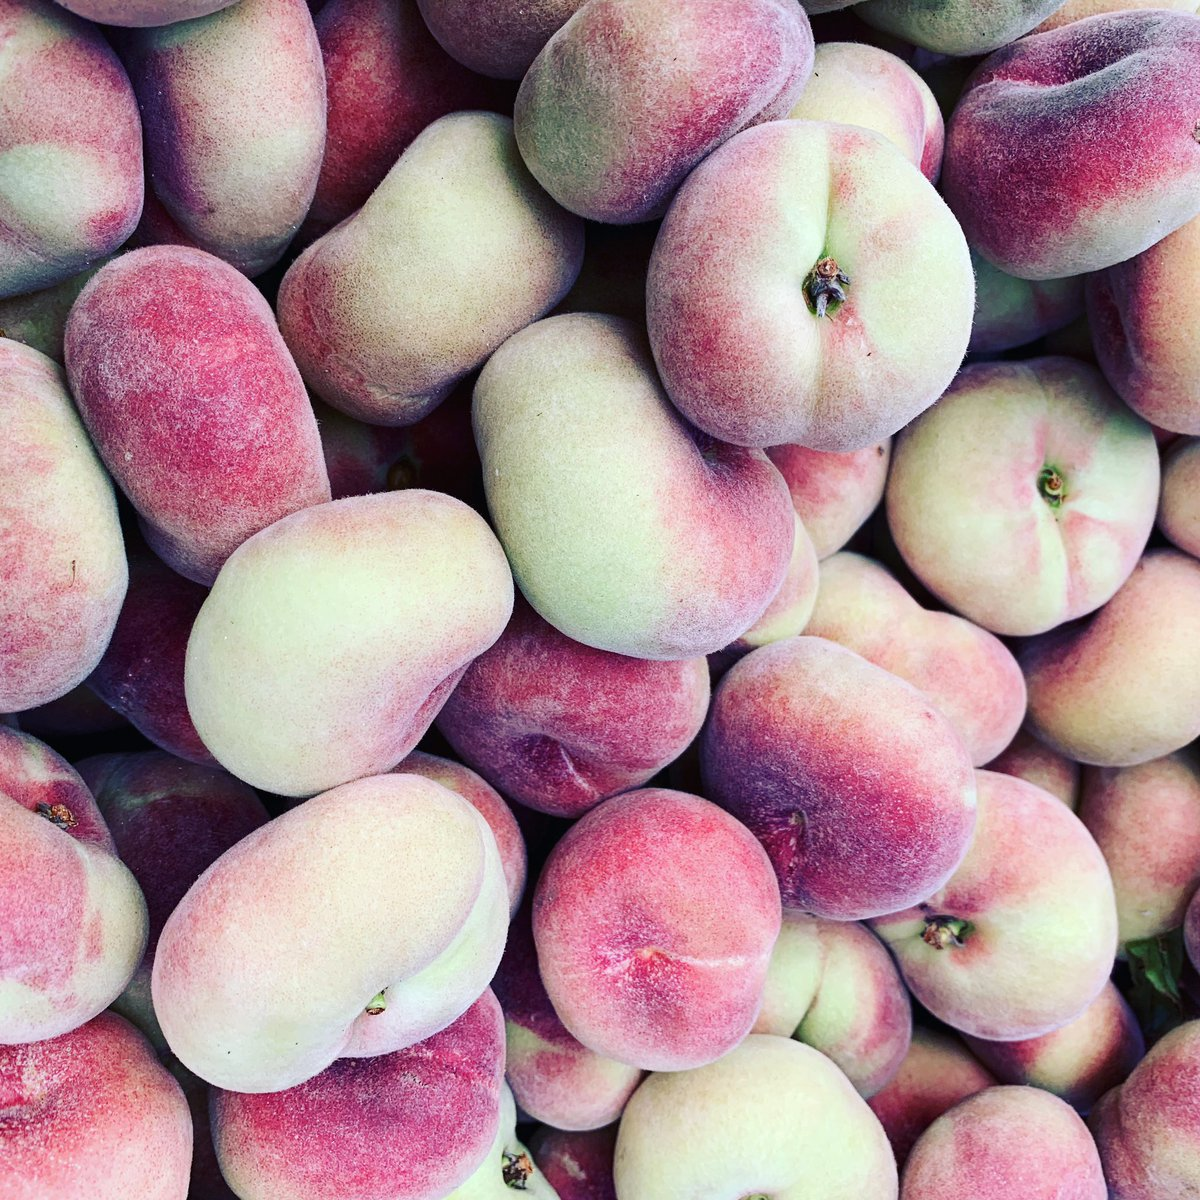 Doughnut peaches are back at Twin Girls organic farm! Yummy yummy yummy for my tummy!   At Grand Lake, Oakland 9-2 slingin sauce! Cool and cloudy but should be dry from here out.  Love & hot sauce ❤️🔥🌶  Scott #luckydoghotsauce #foodsbestfriend https://t.co/2EnUi9u9m8